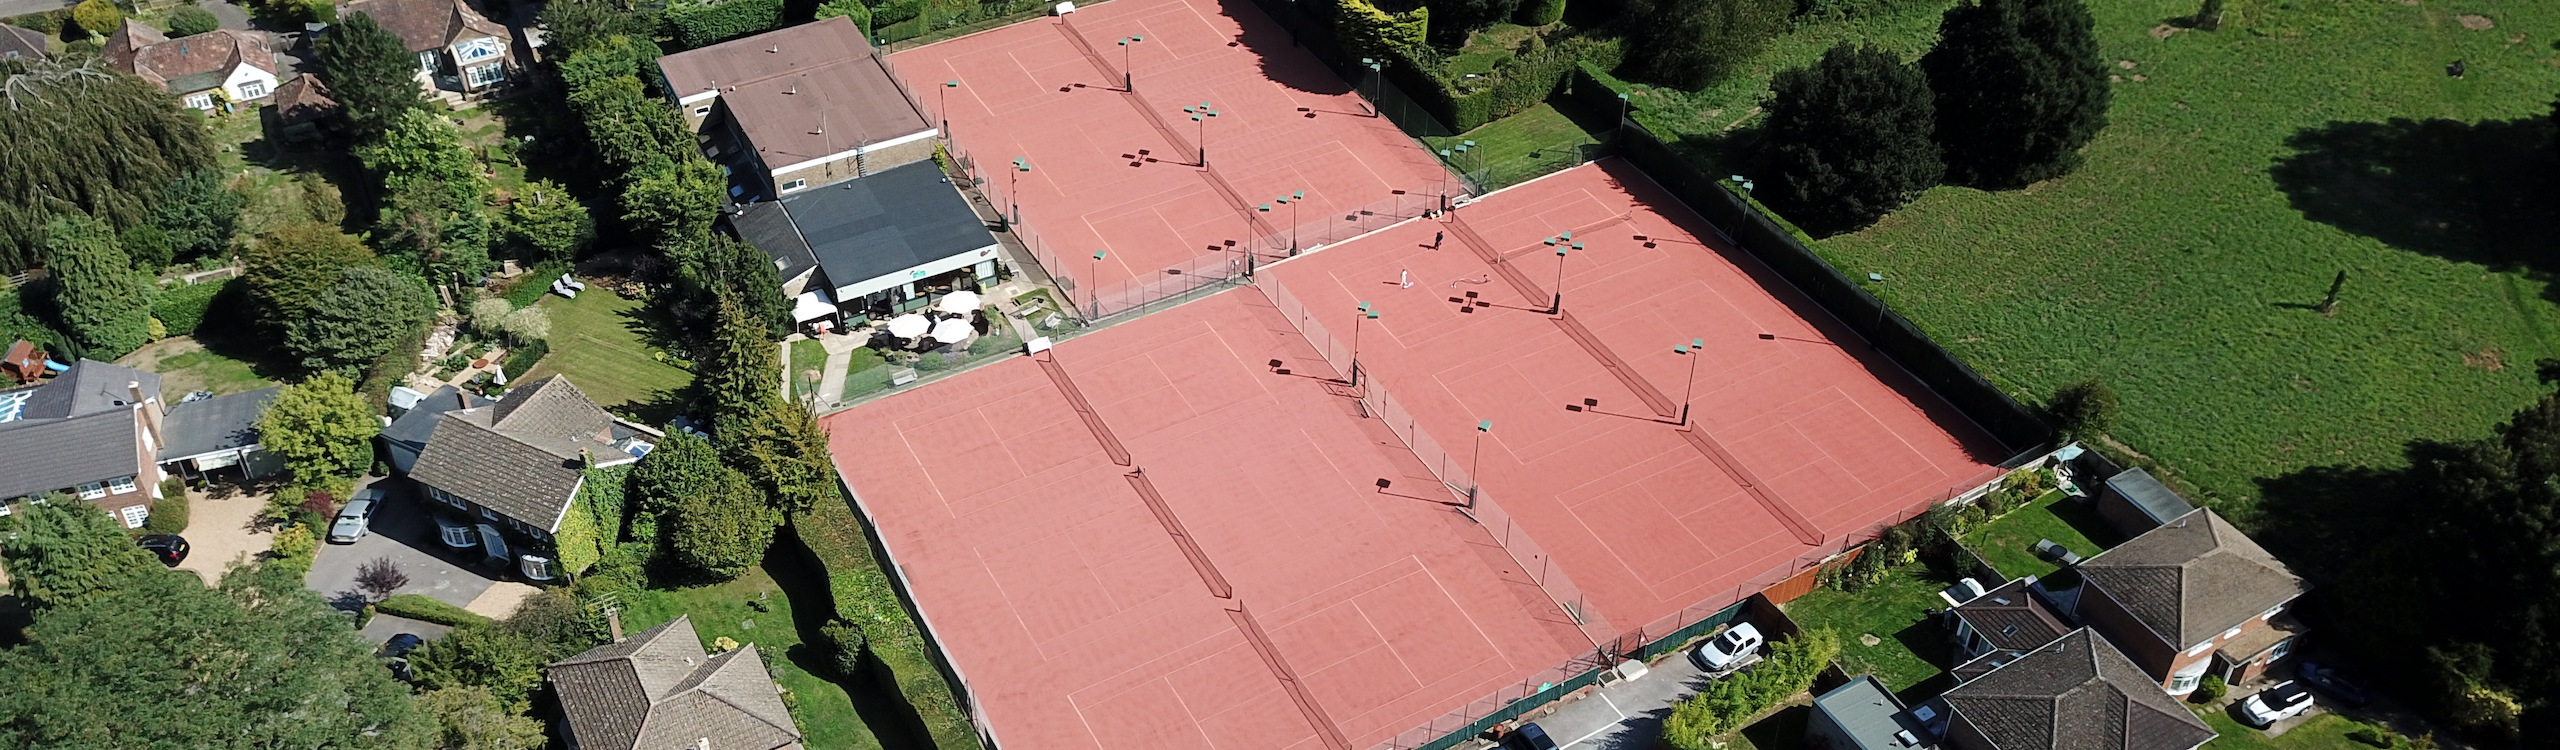 Dorking Lawn Tennis and Squash Club